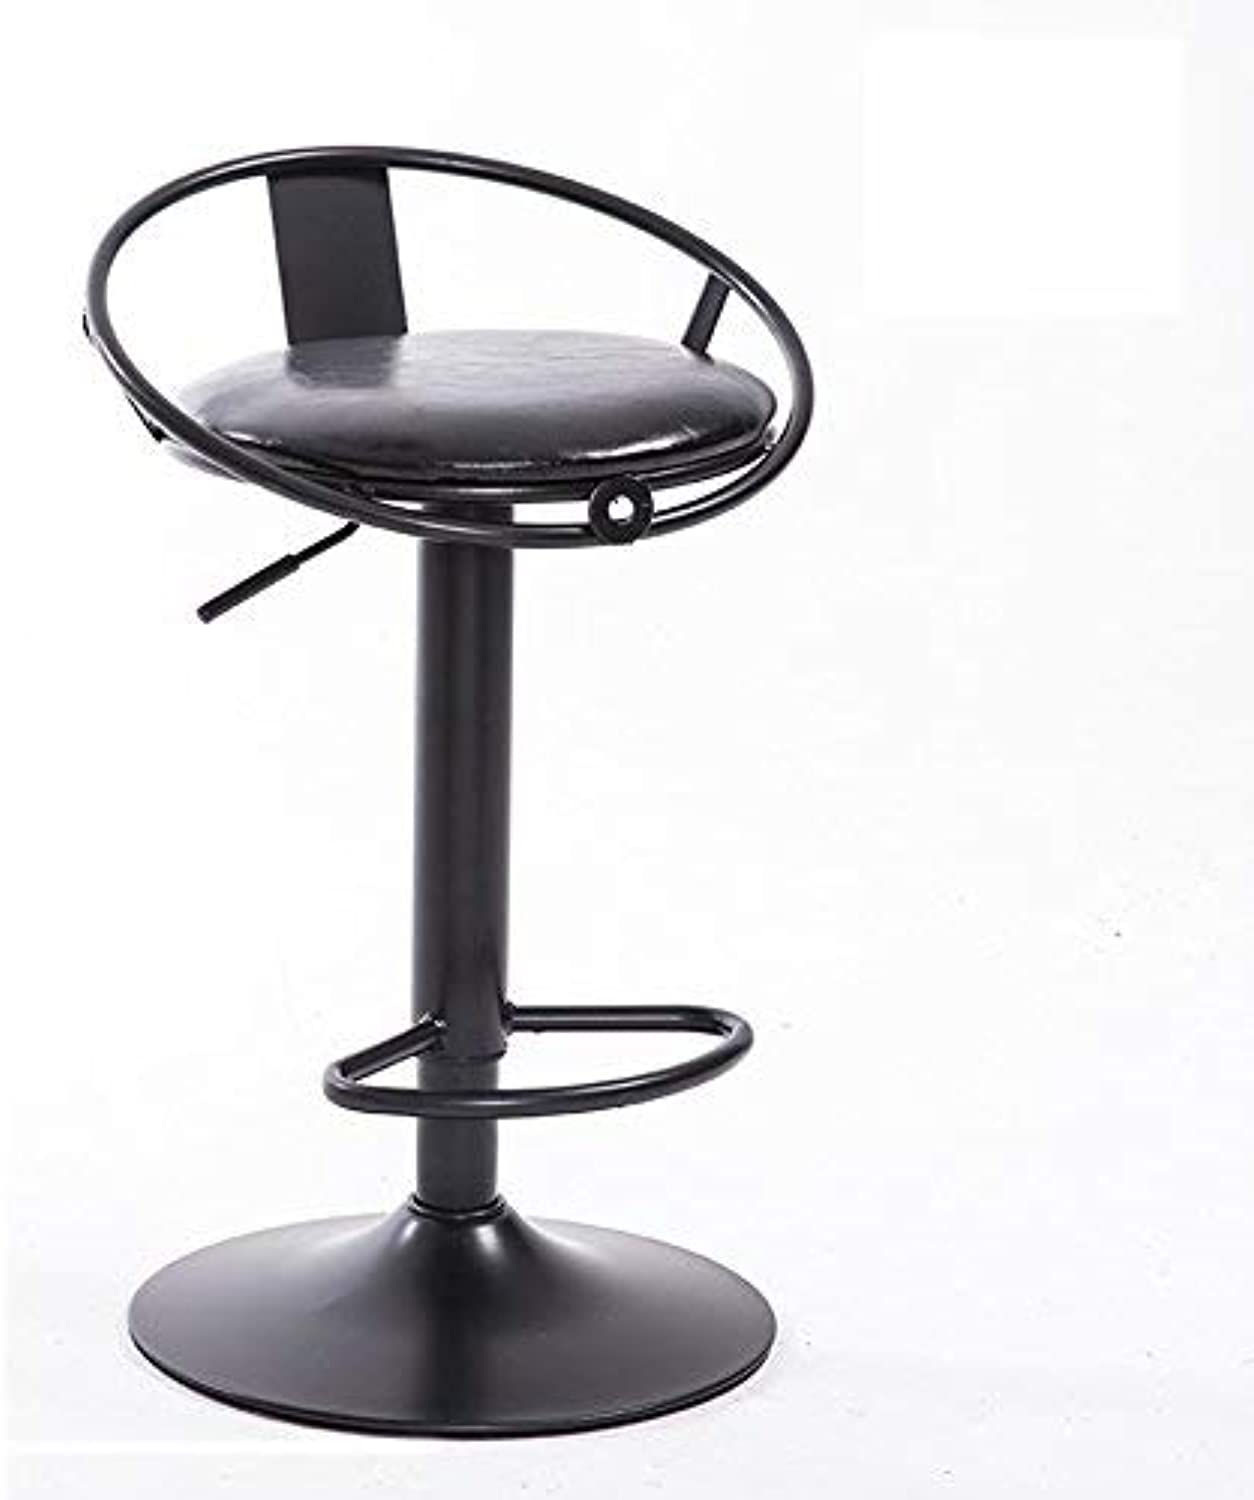 CWJ Chair Stool - Bar Chairs Round Stool High Stool Dining Chair Iron Chair Height Adjustable Modern Style Adult Home Stool